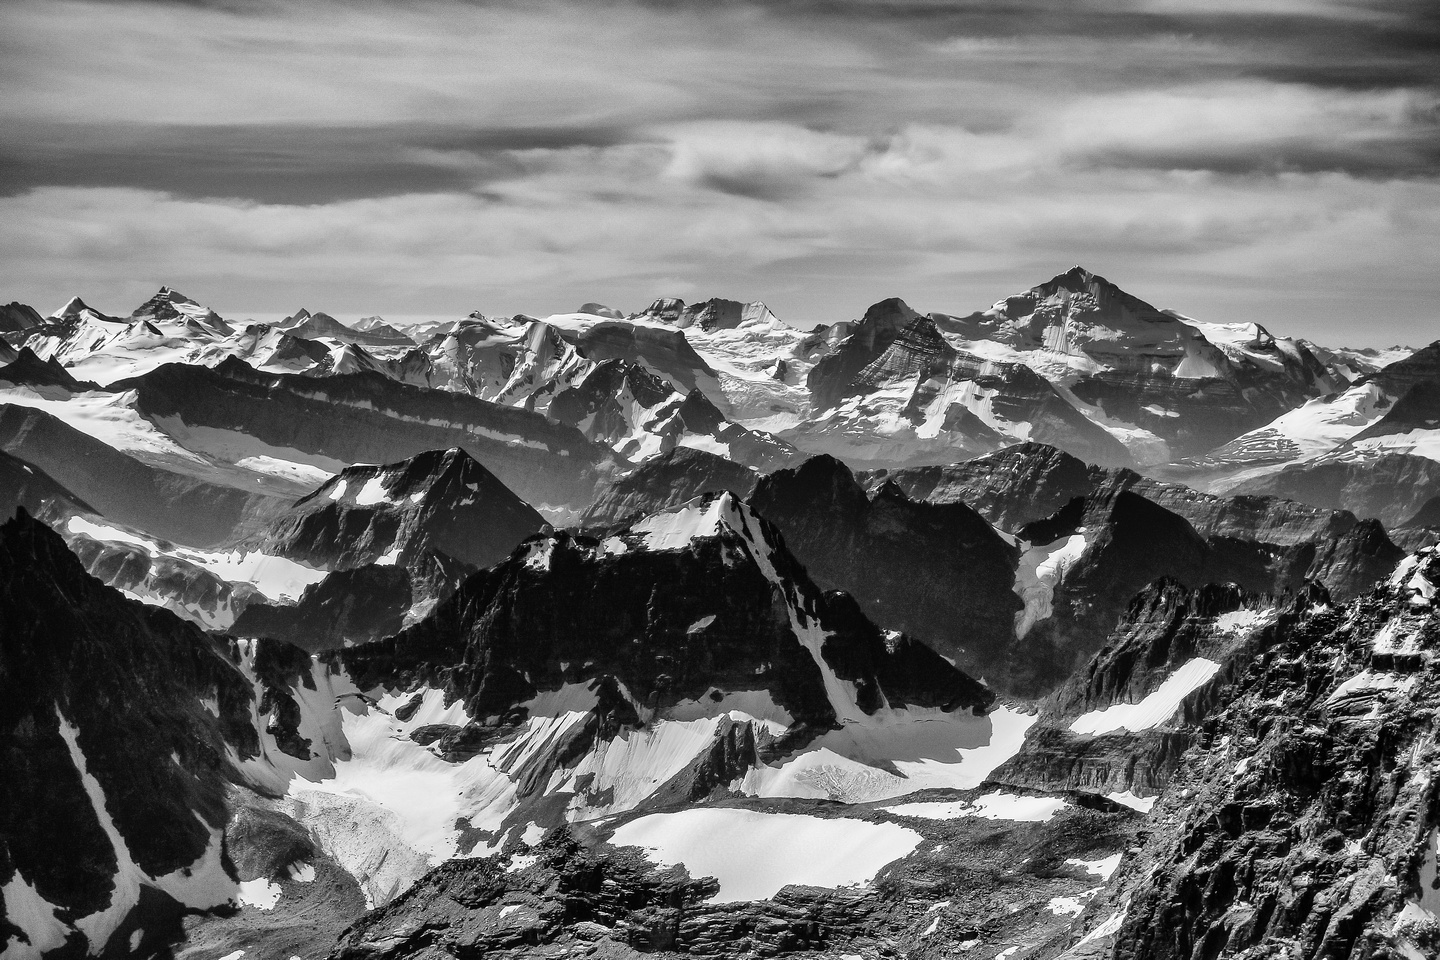 One of the highest peaks in the Rockies - Mount Clemenceau with Shackleton and Tsar to the left.